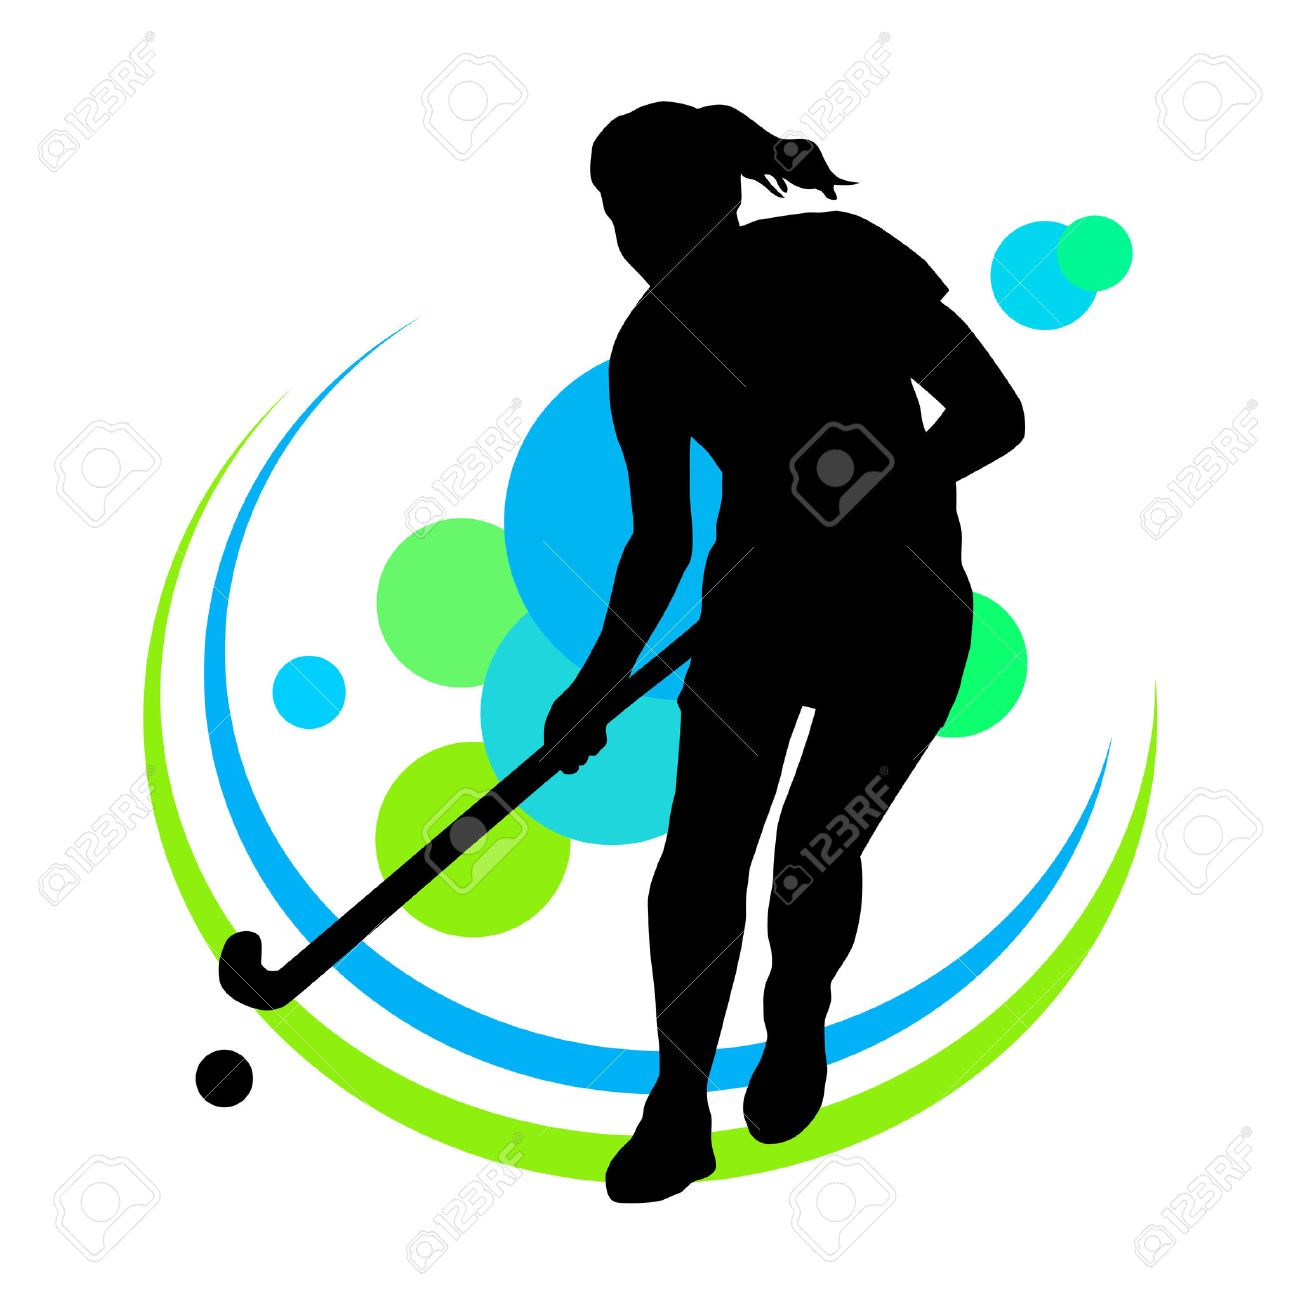 Illustration - field hockey player Stock Vector - 22261580